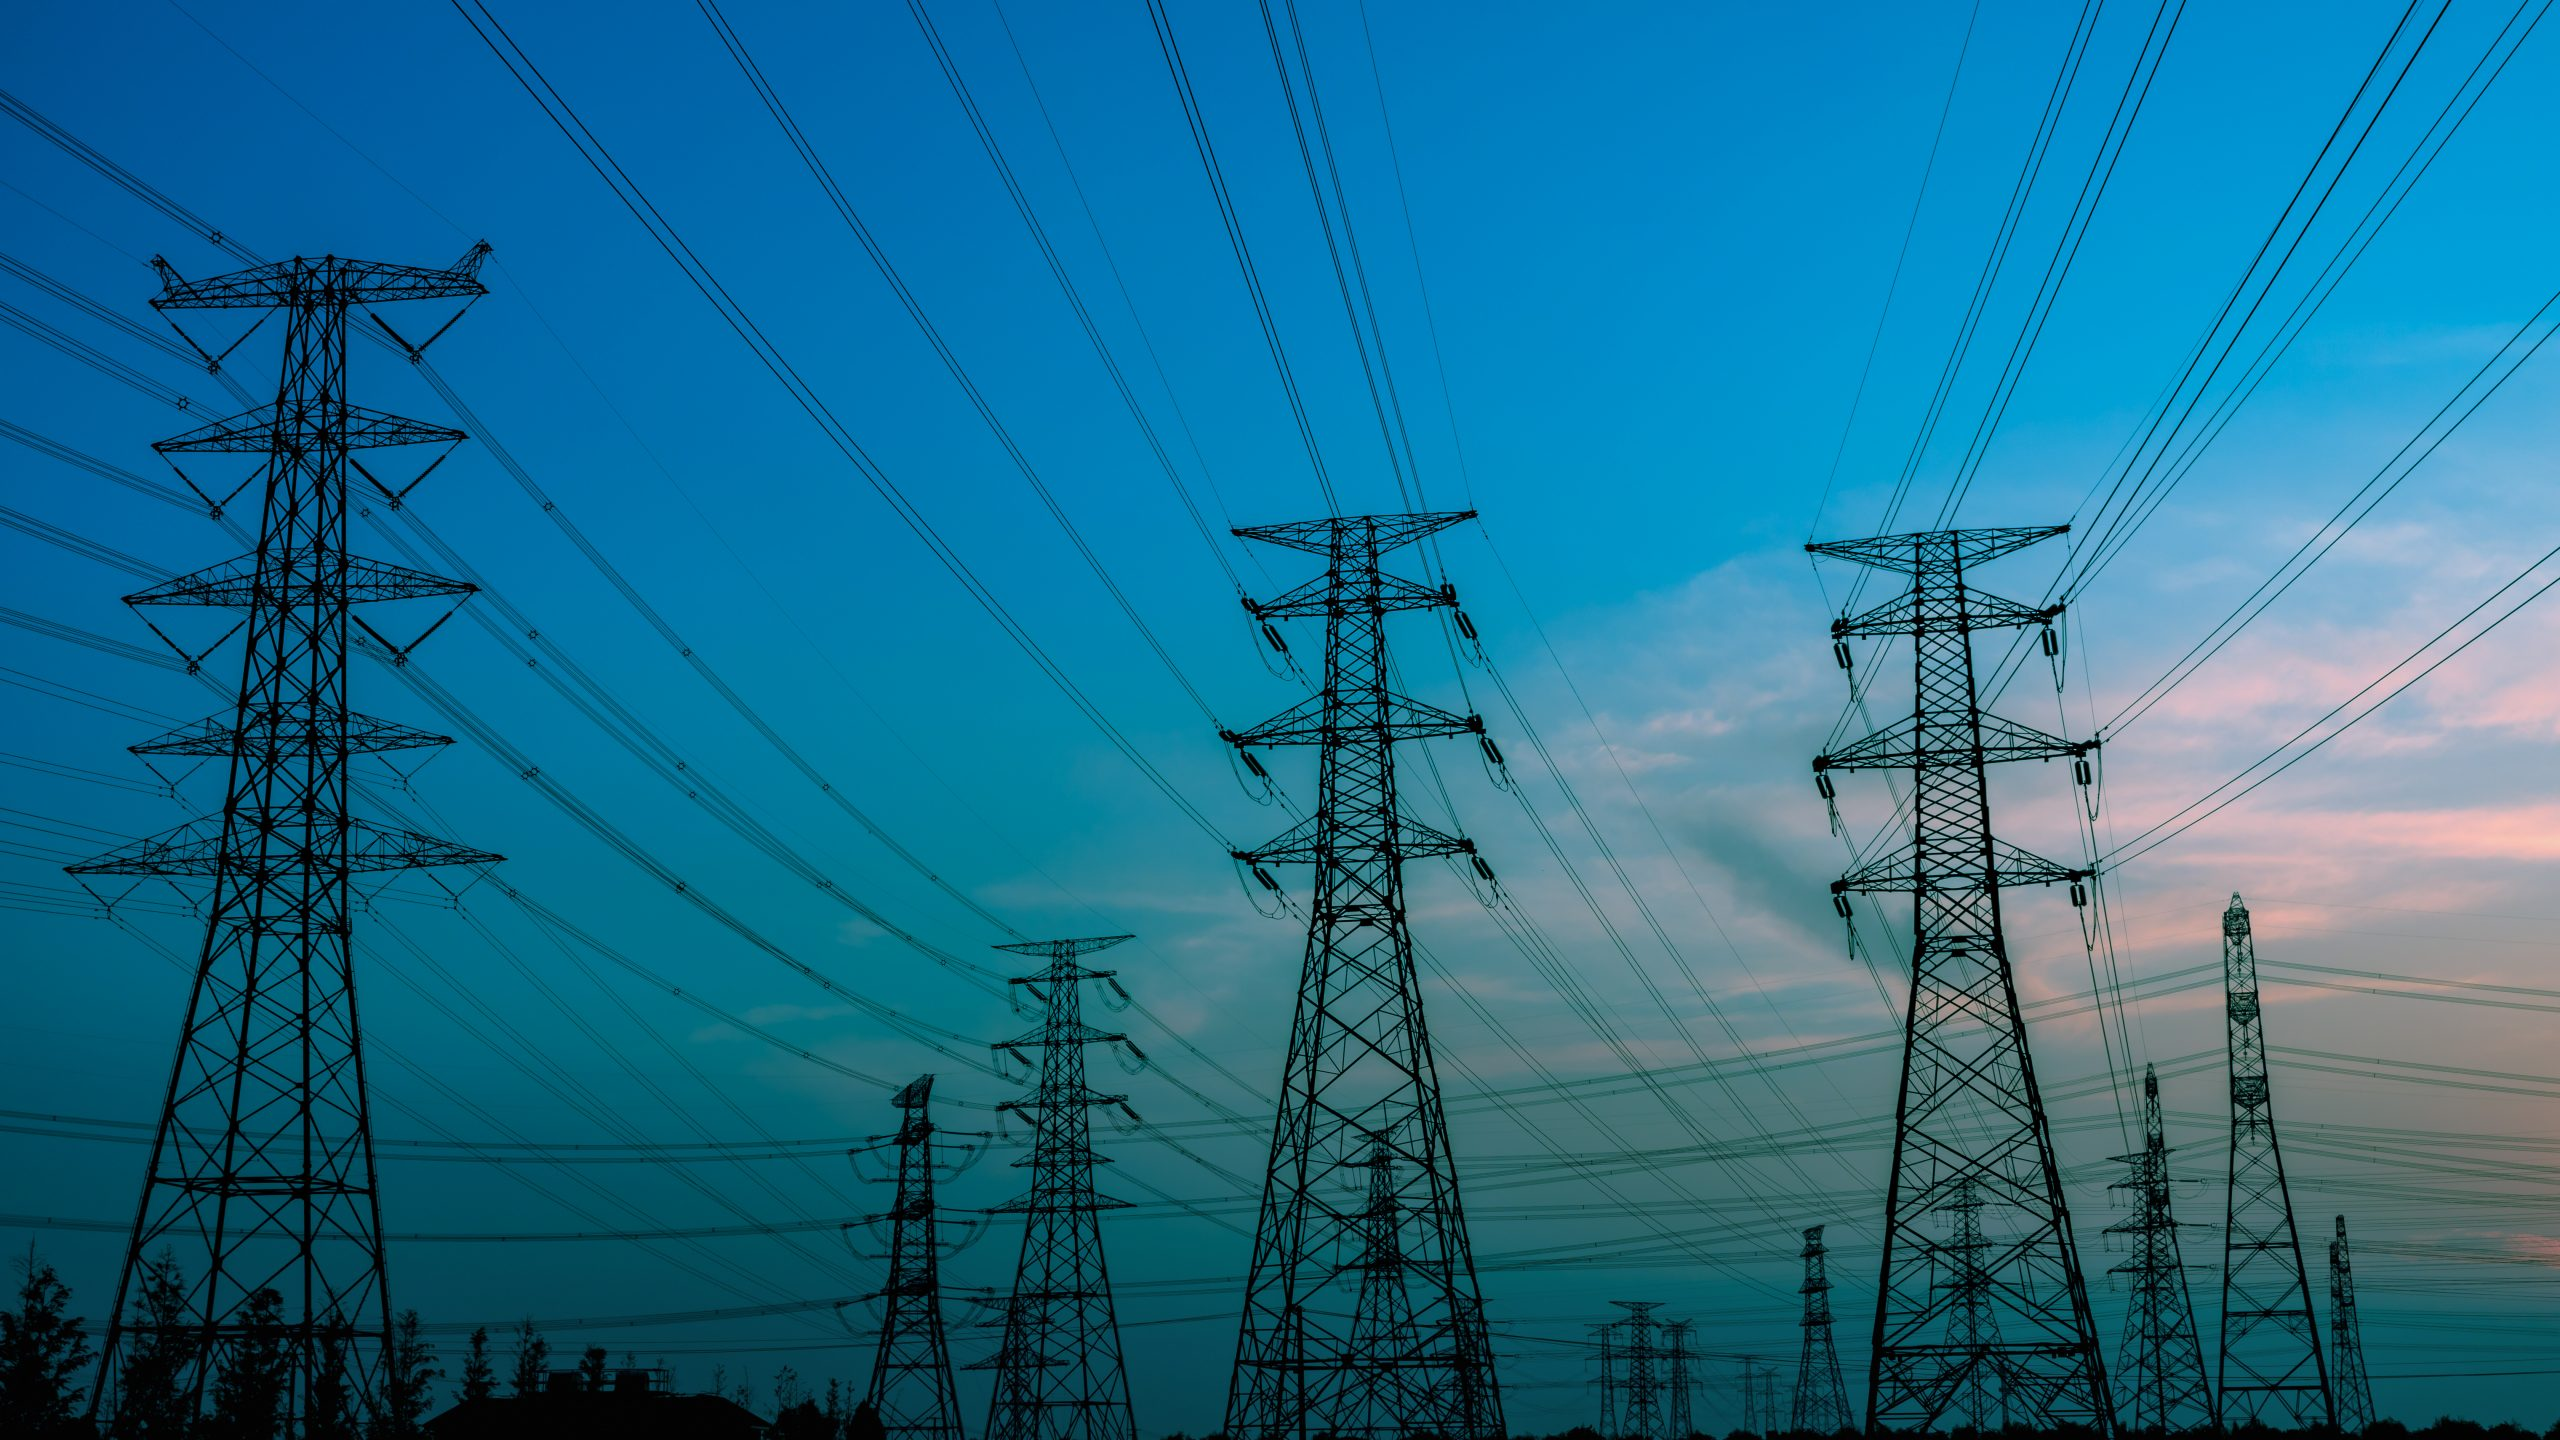 Inflated wholesale energy prices and continued infrastructure issues leading Pinergy to announce further price increase